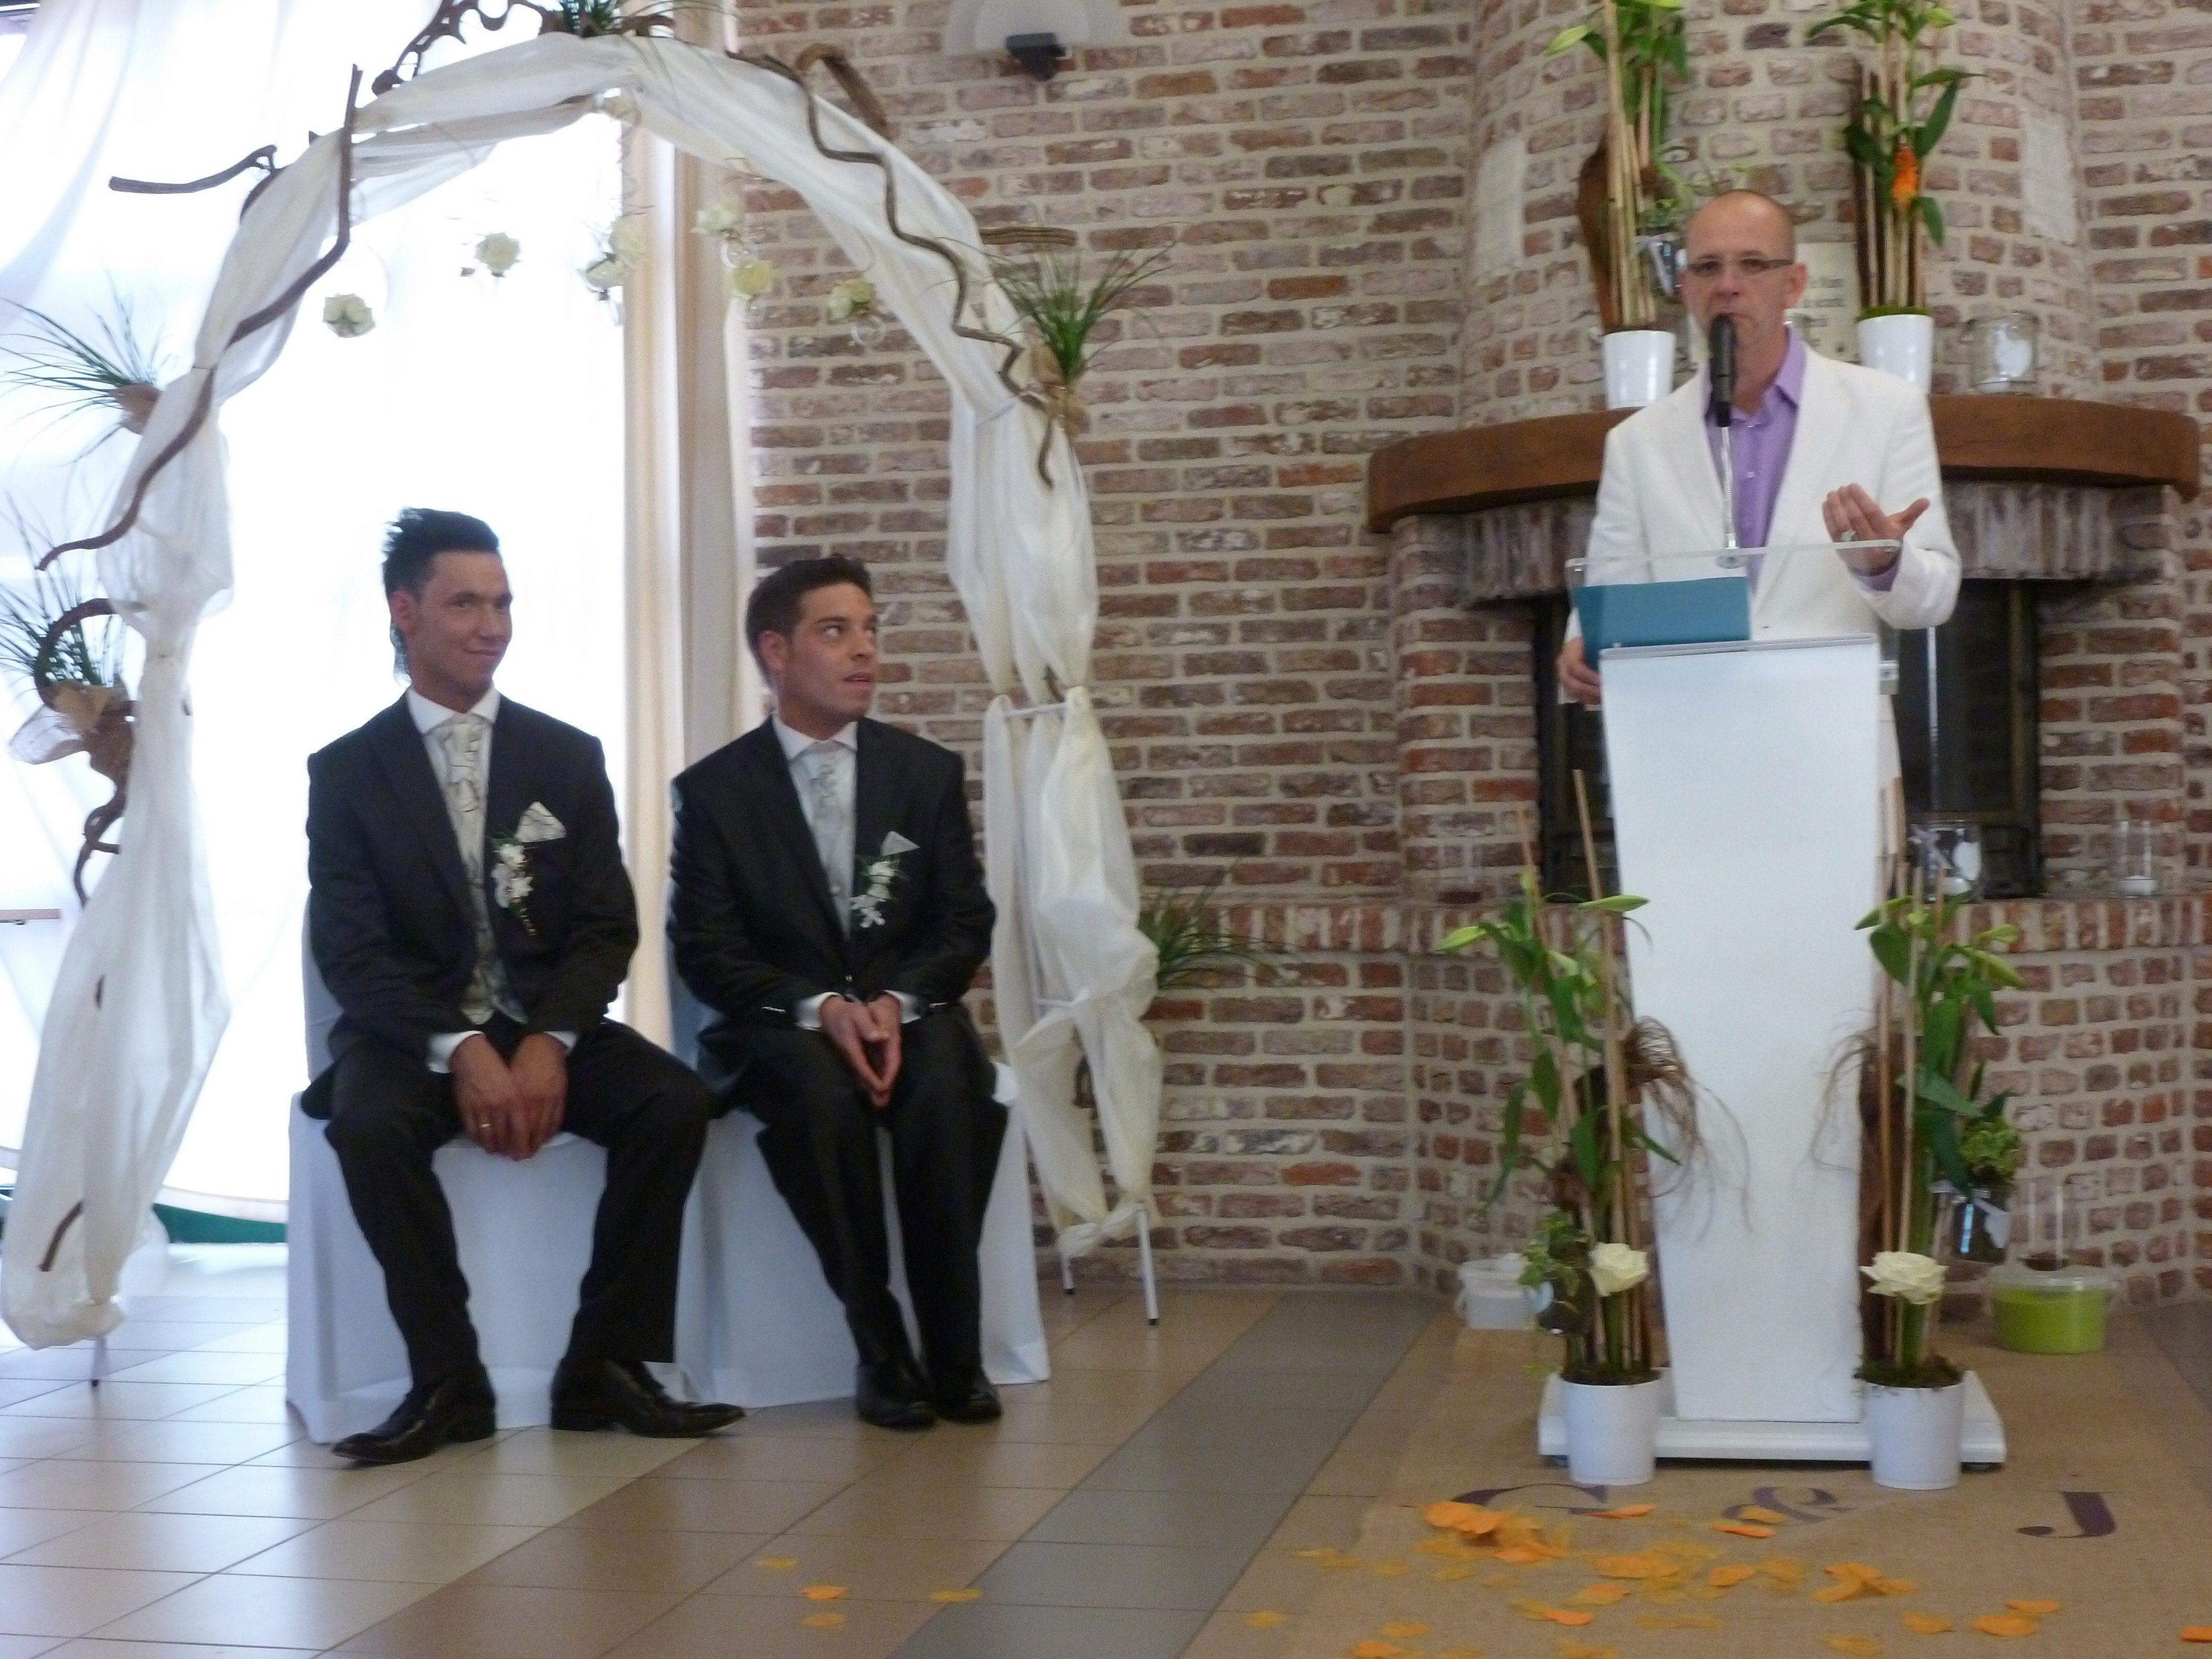 officiant mariage gay